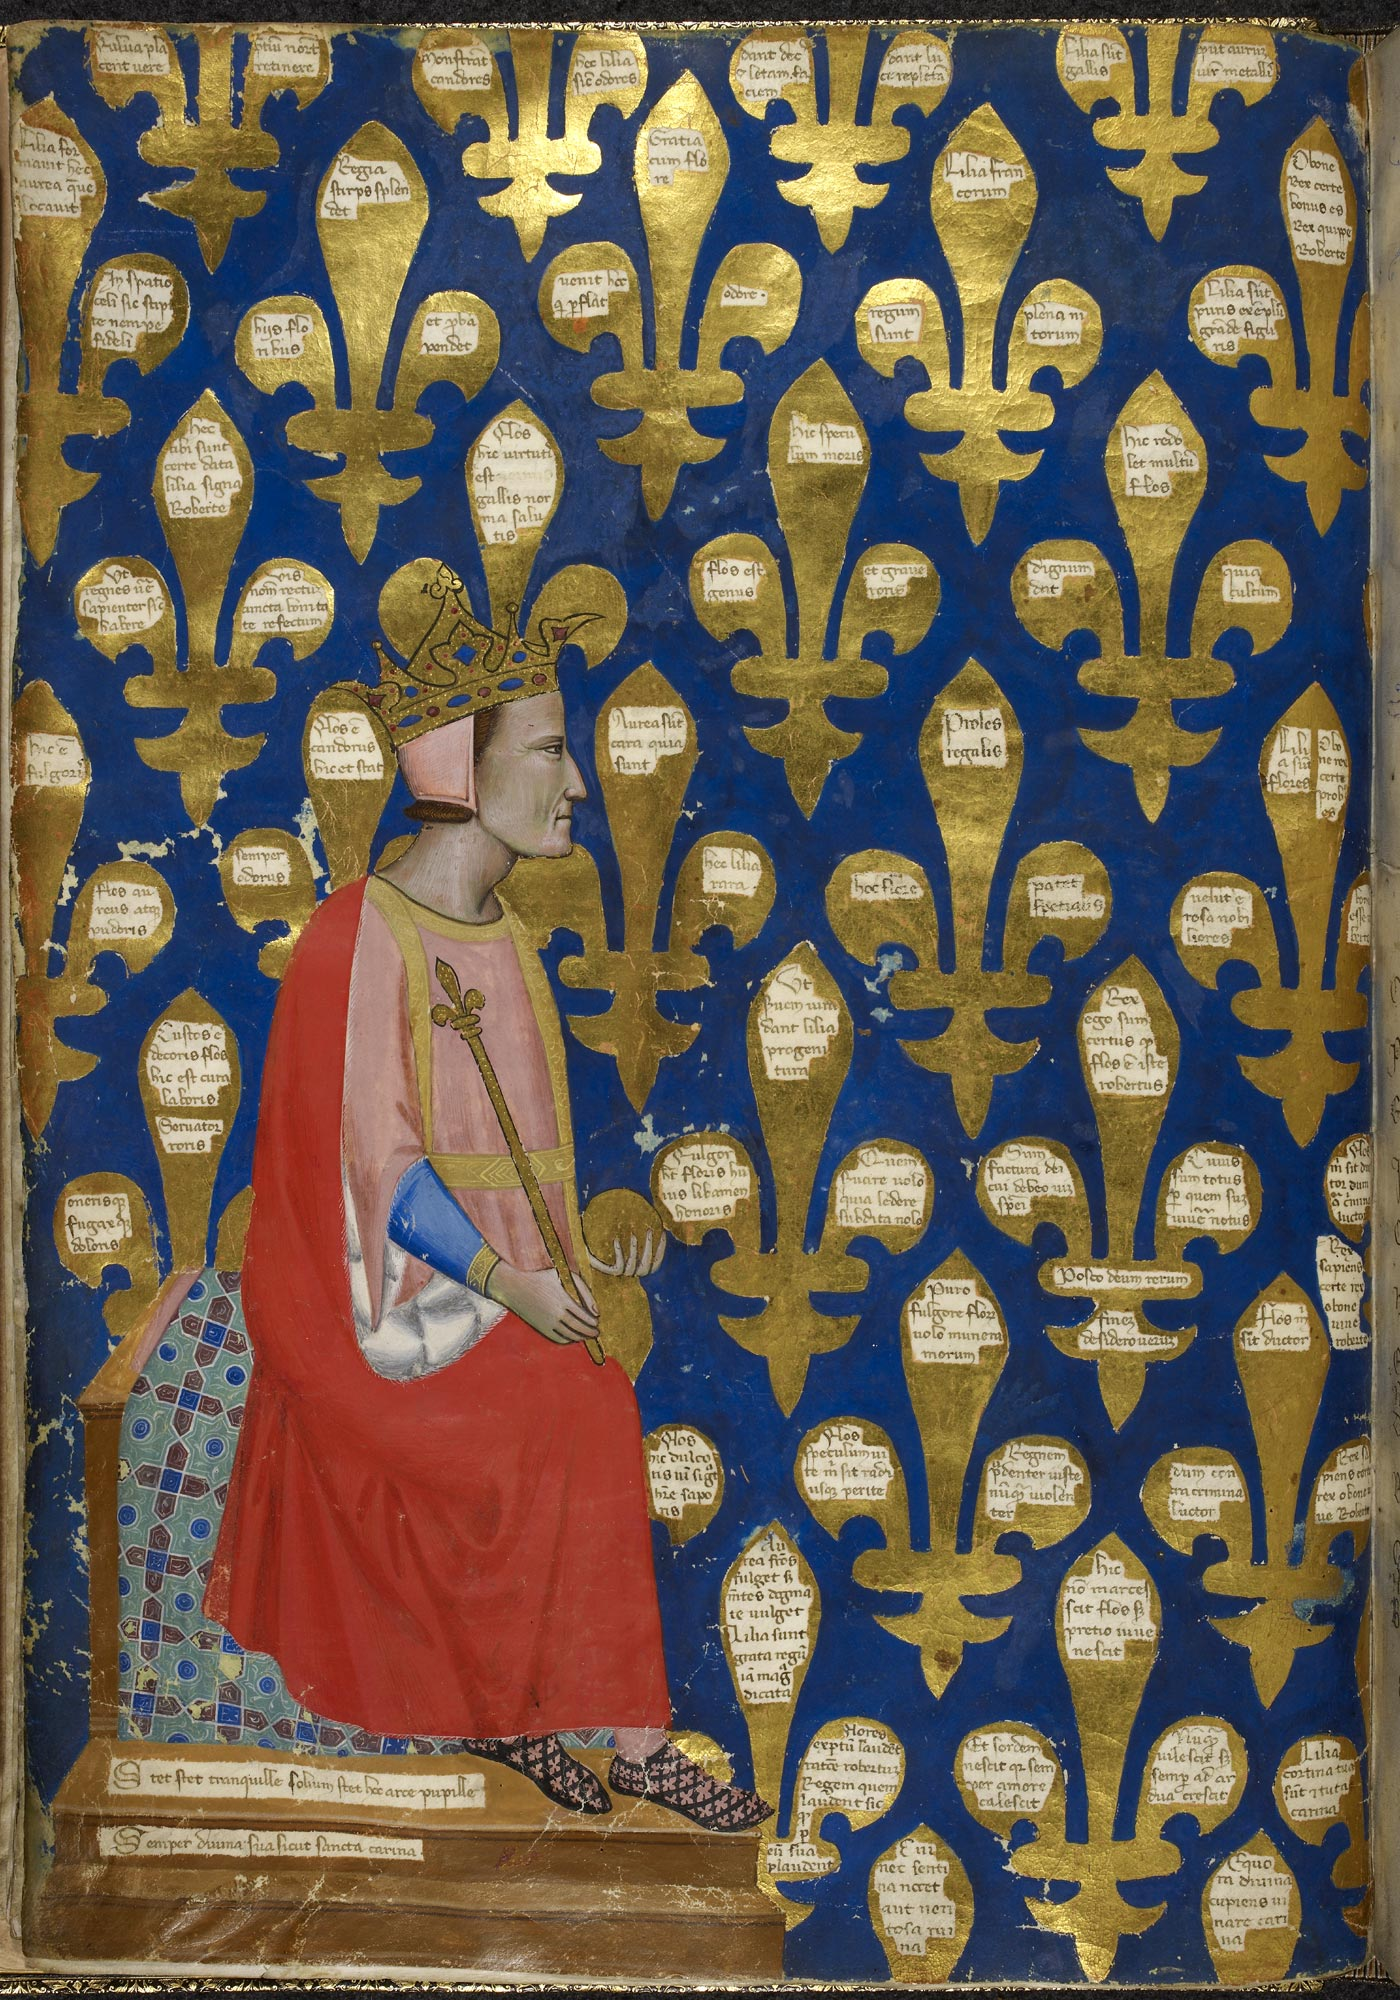 Regina Carmina showing King Robert of Naples, f.10v